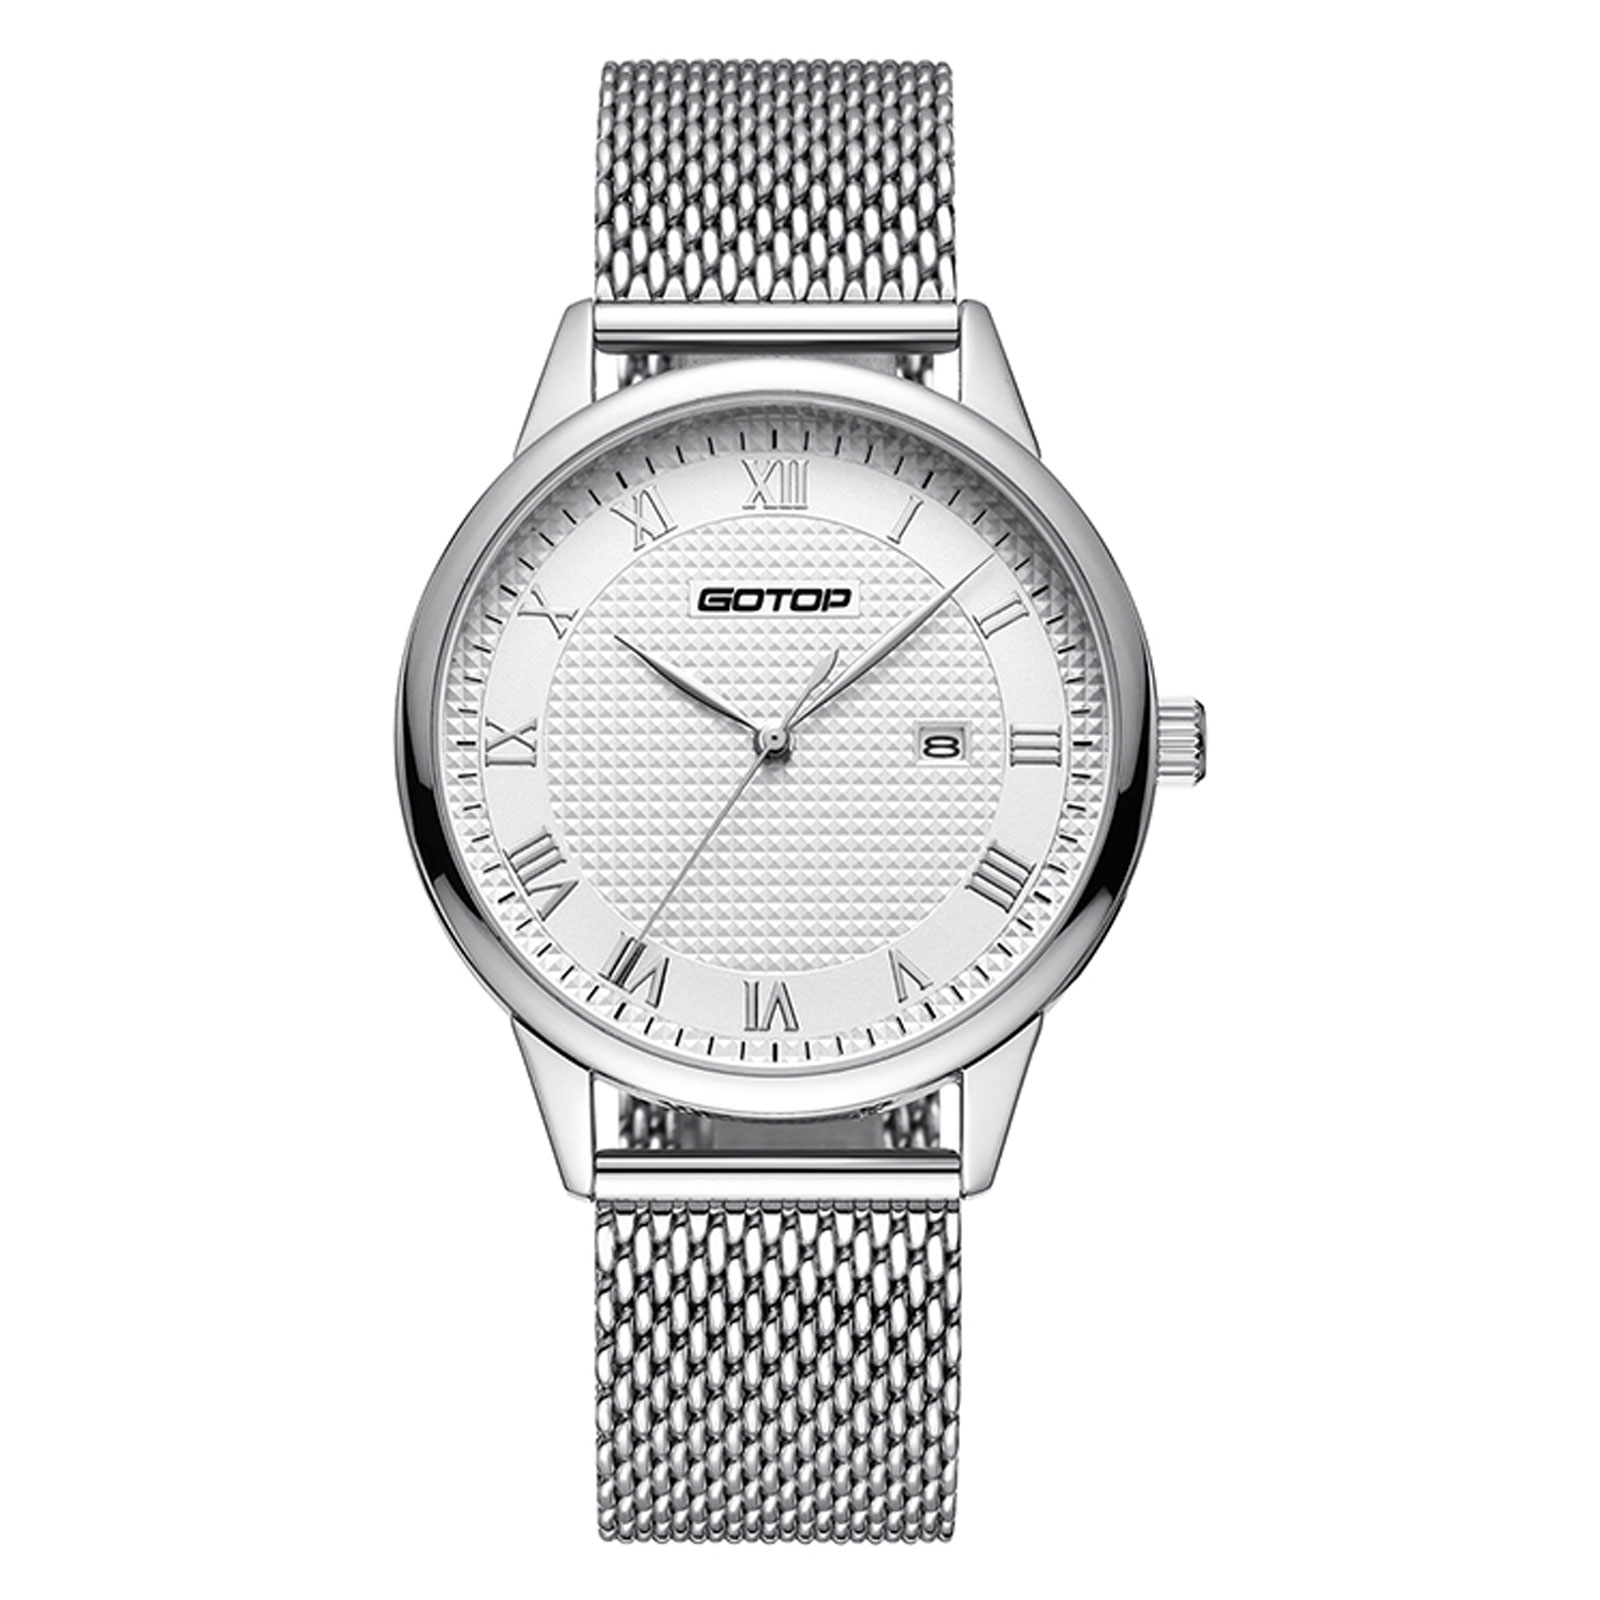 Silver And White Men's Watch With Roman Numera